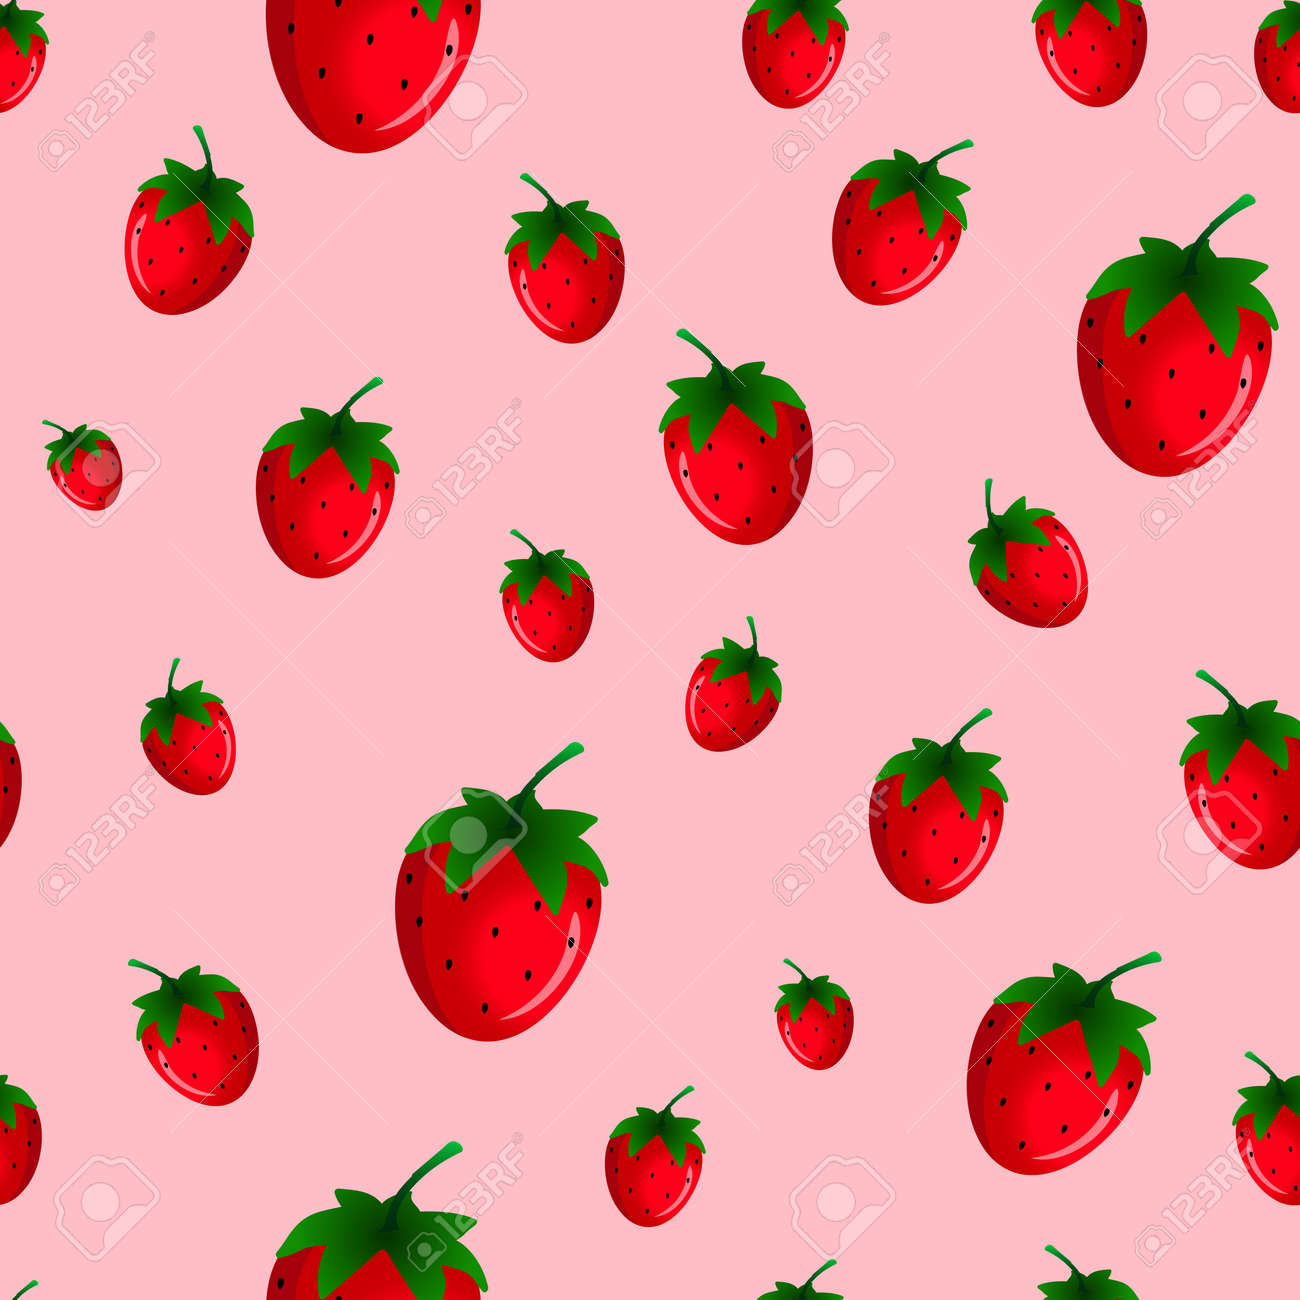 Strawberry Seamless Pattern Good For Wallpaper Wrapping Papers